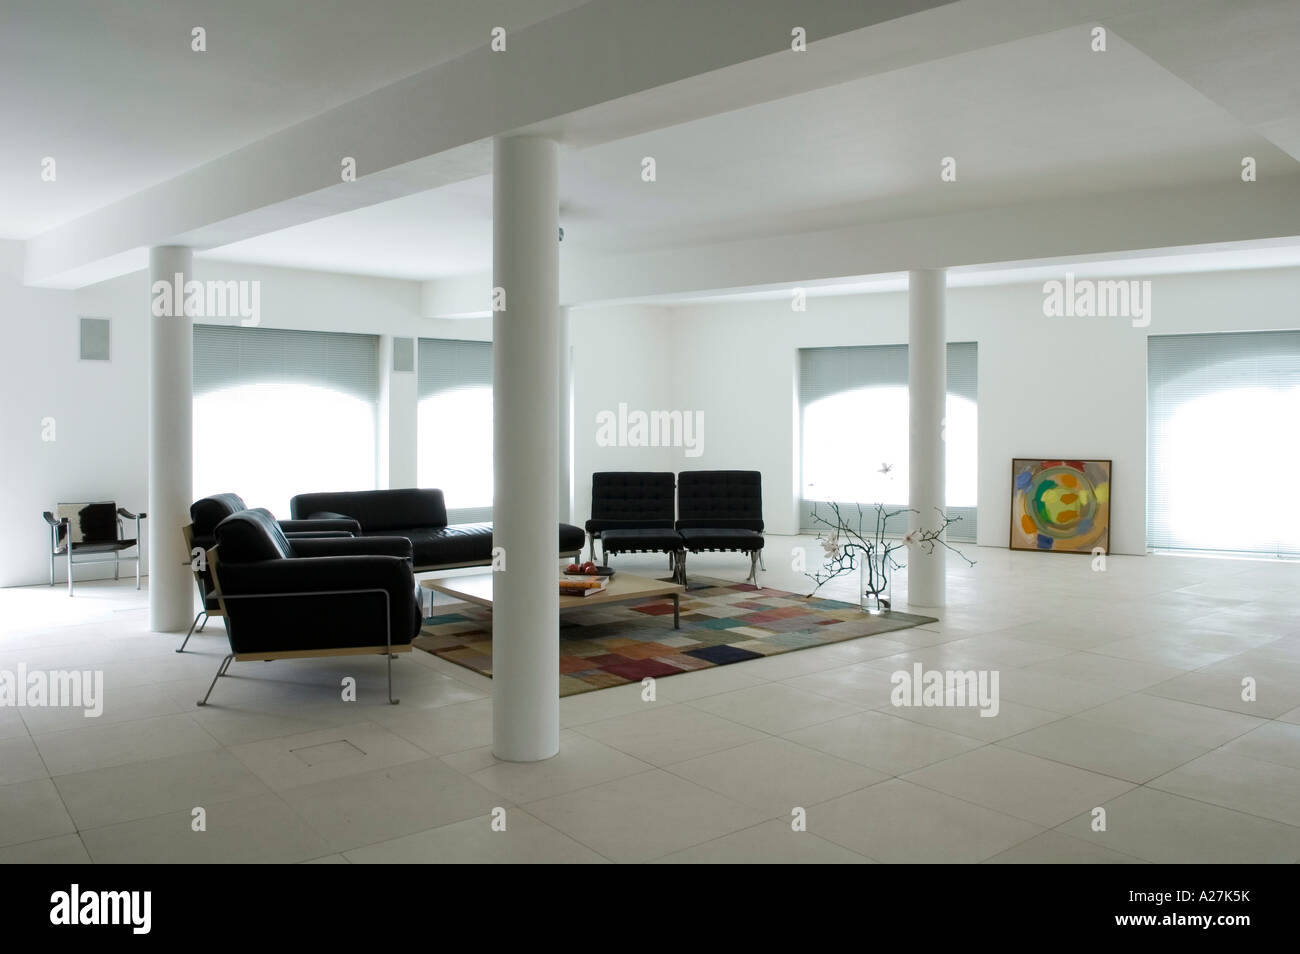 Living area with black seating and interior columns in minimalist warehouse conversion - Stock Image